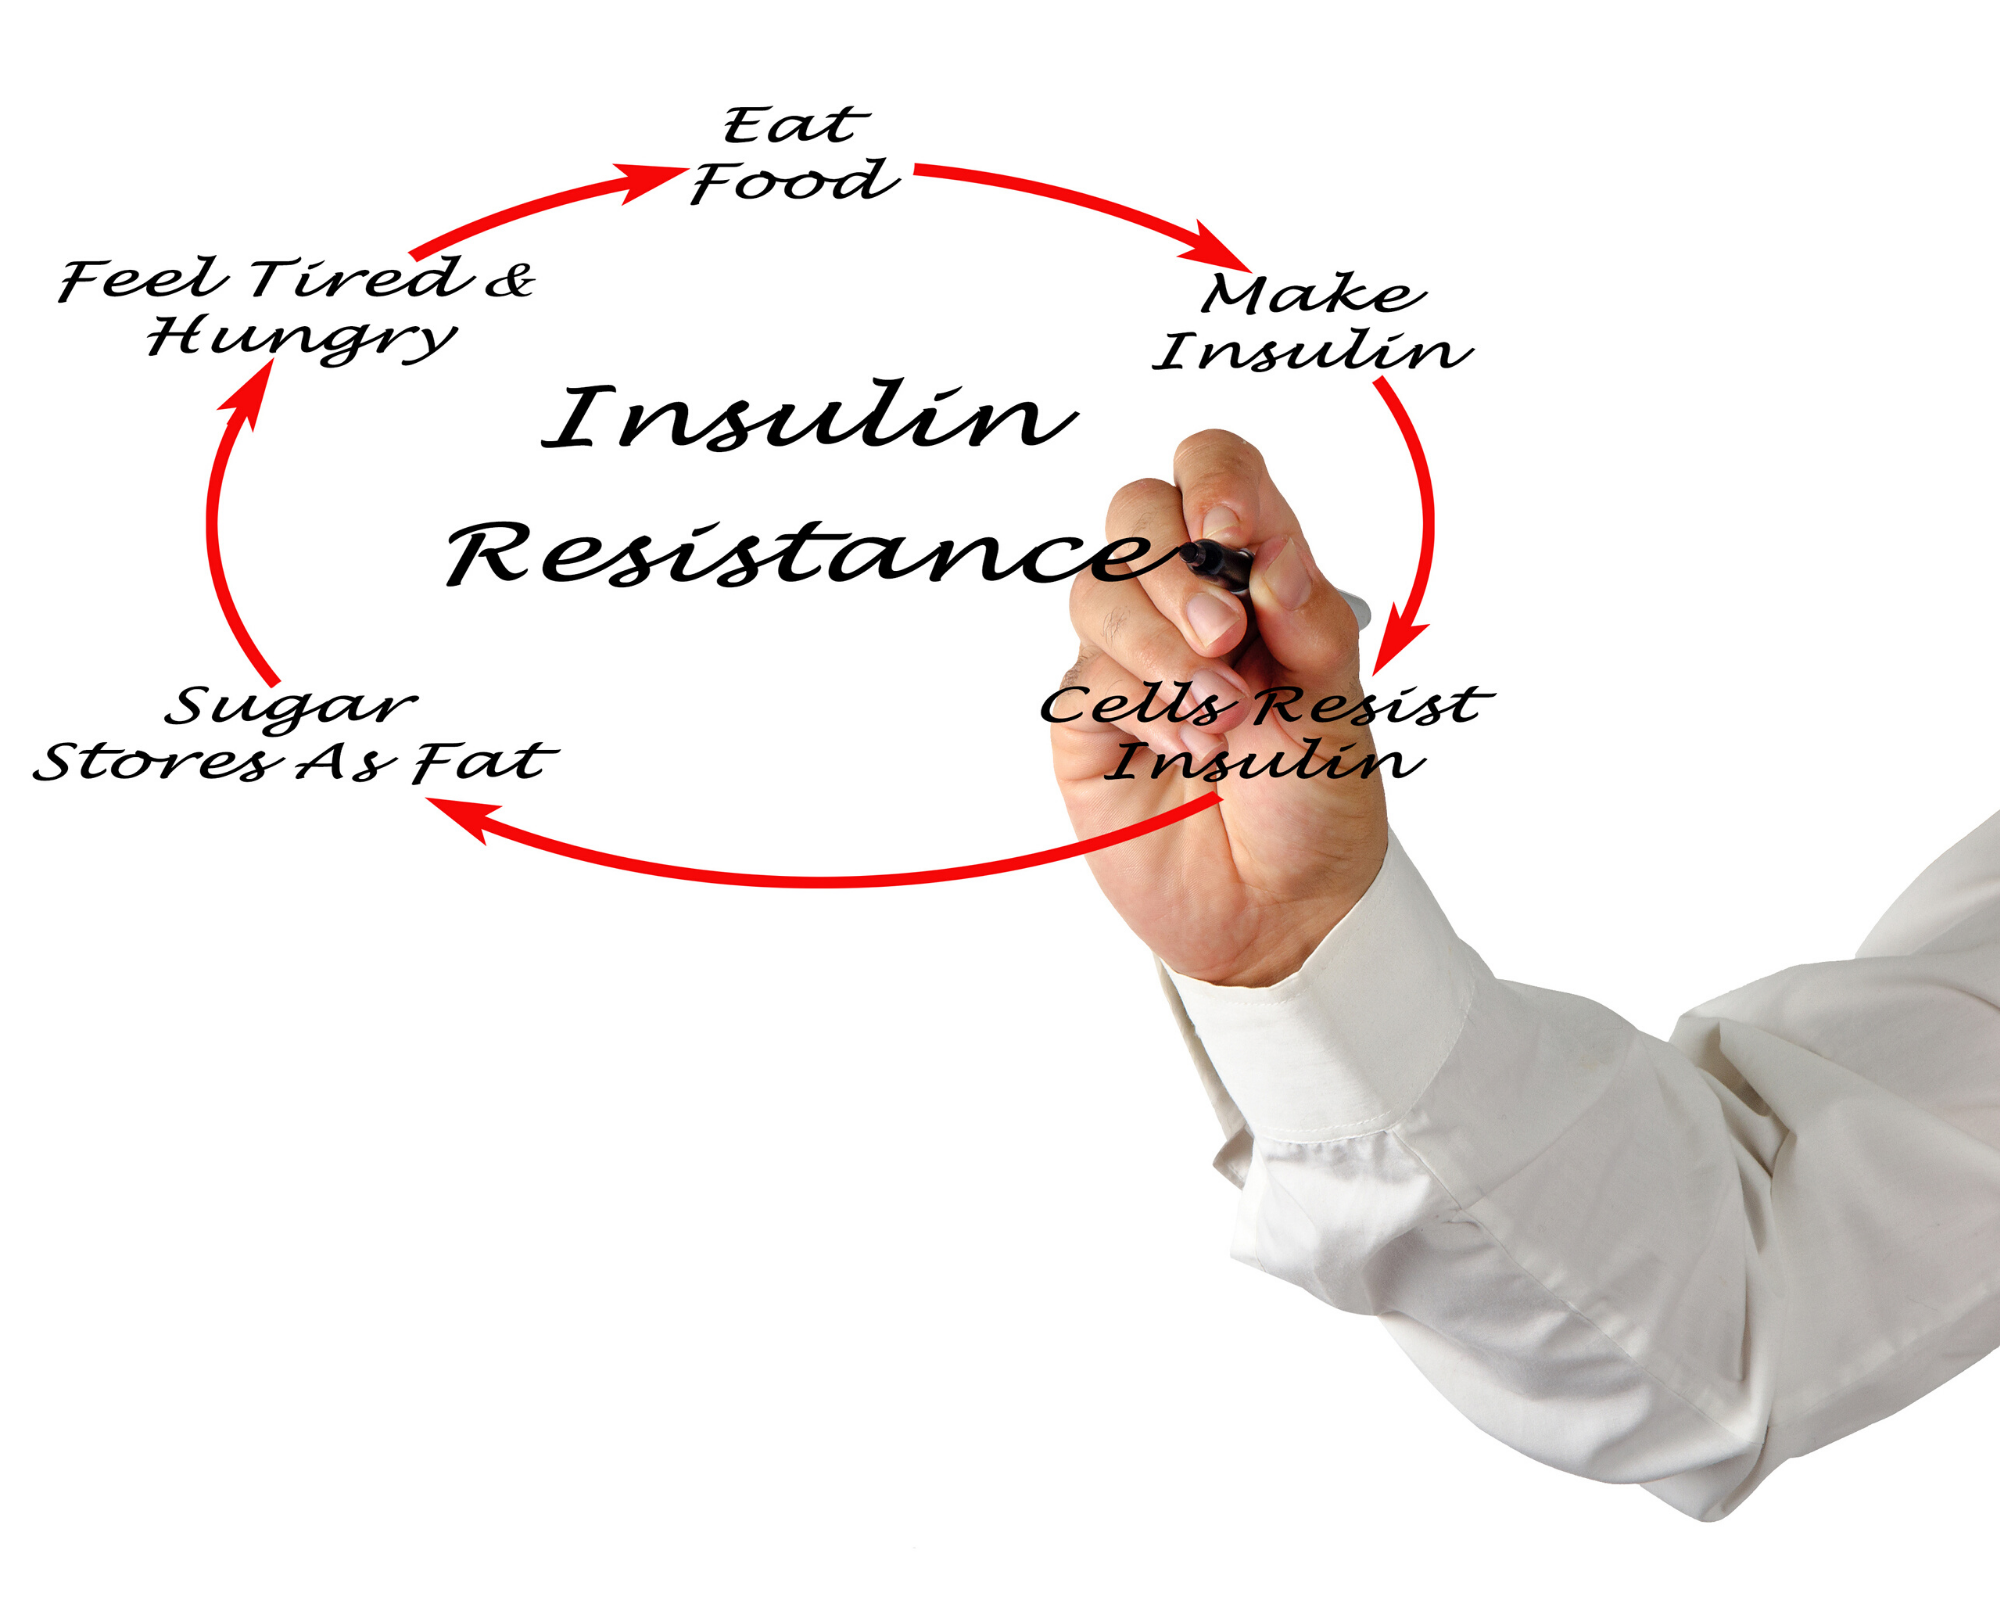 Hand writing down the factors that contribute to insulin resistance